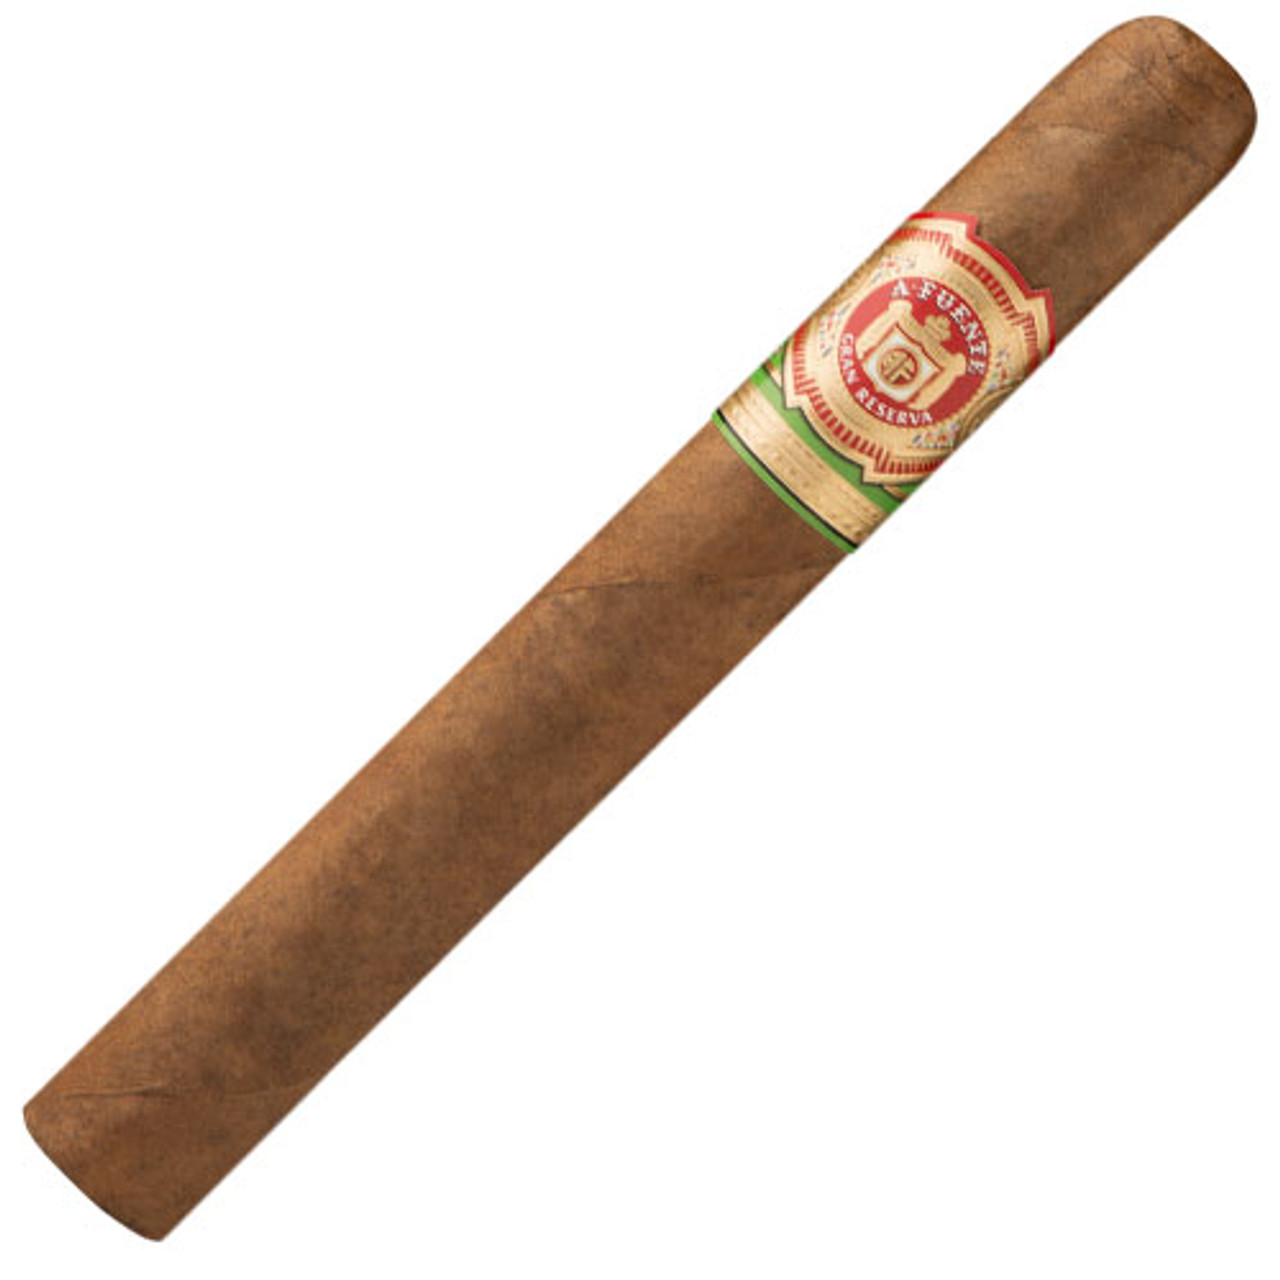 Arturo Fuente 8-5-8 Cigars - 6 x 47 (Box of 25)